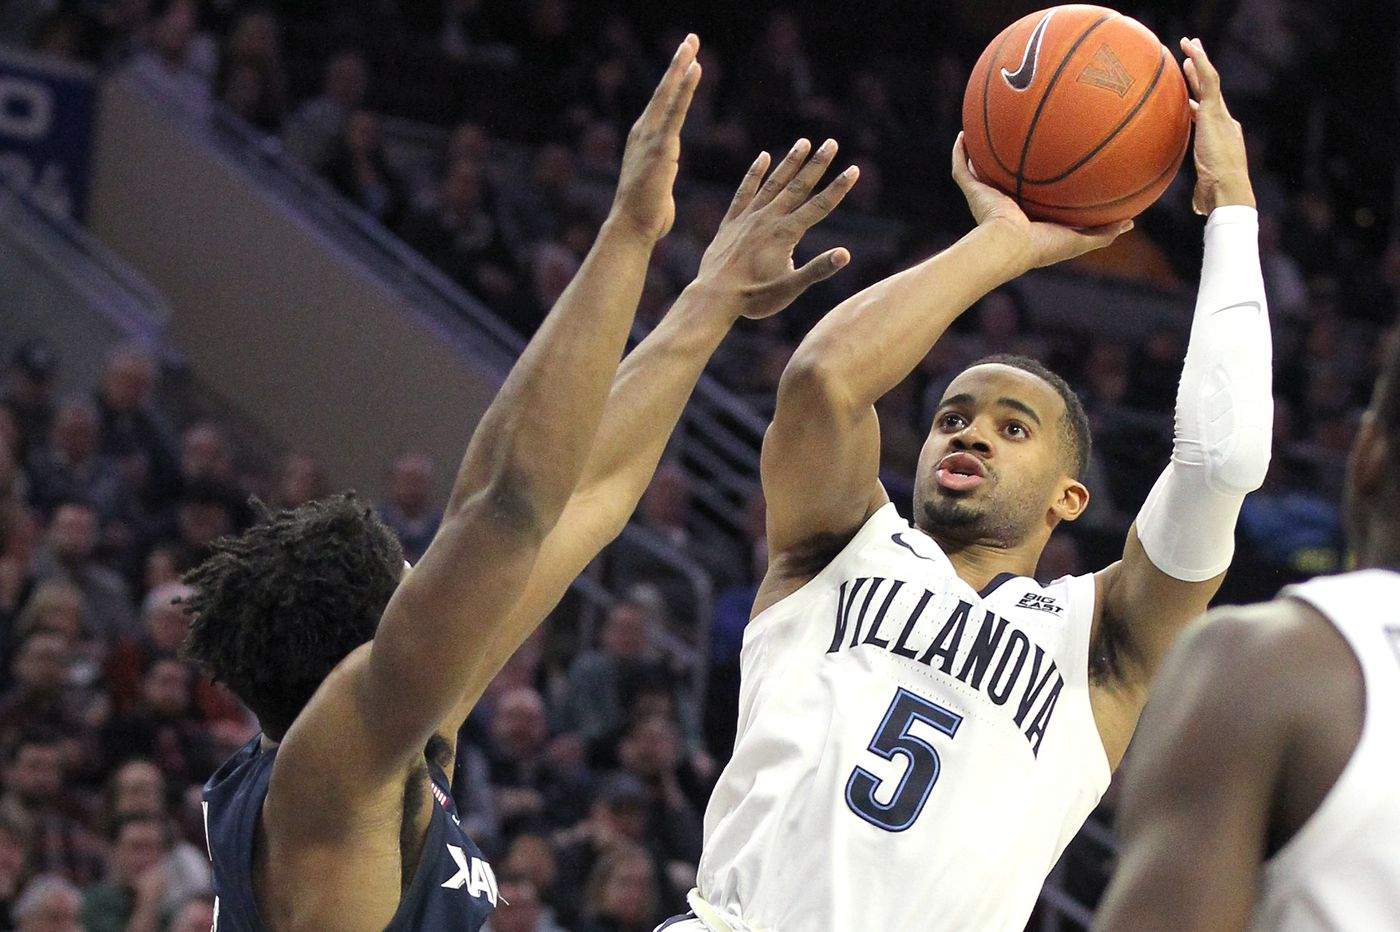 Villanova uses three-point shooting to defeat Xavier, 85-75